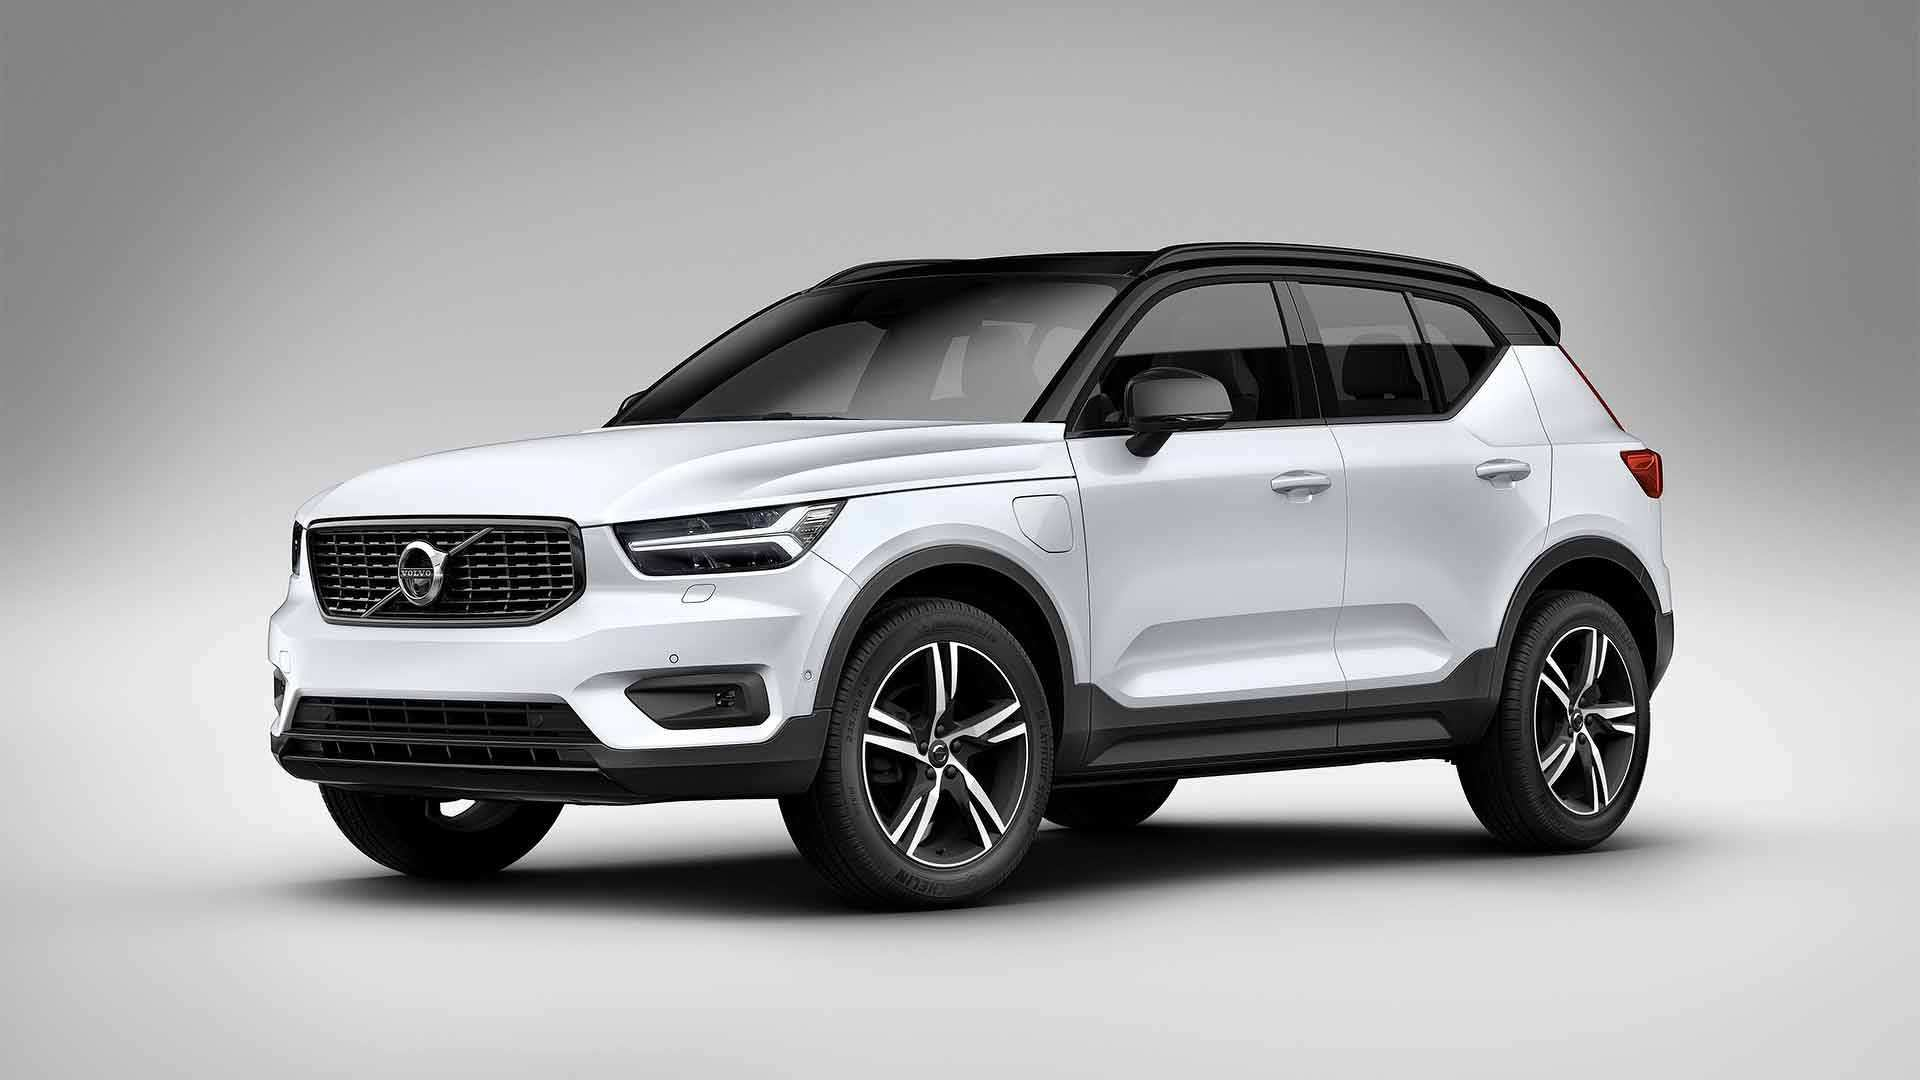 85 All New Electric Volvo 2019 Review with Electric Volvo 2019